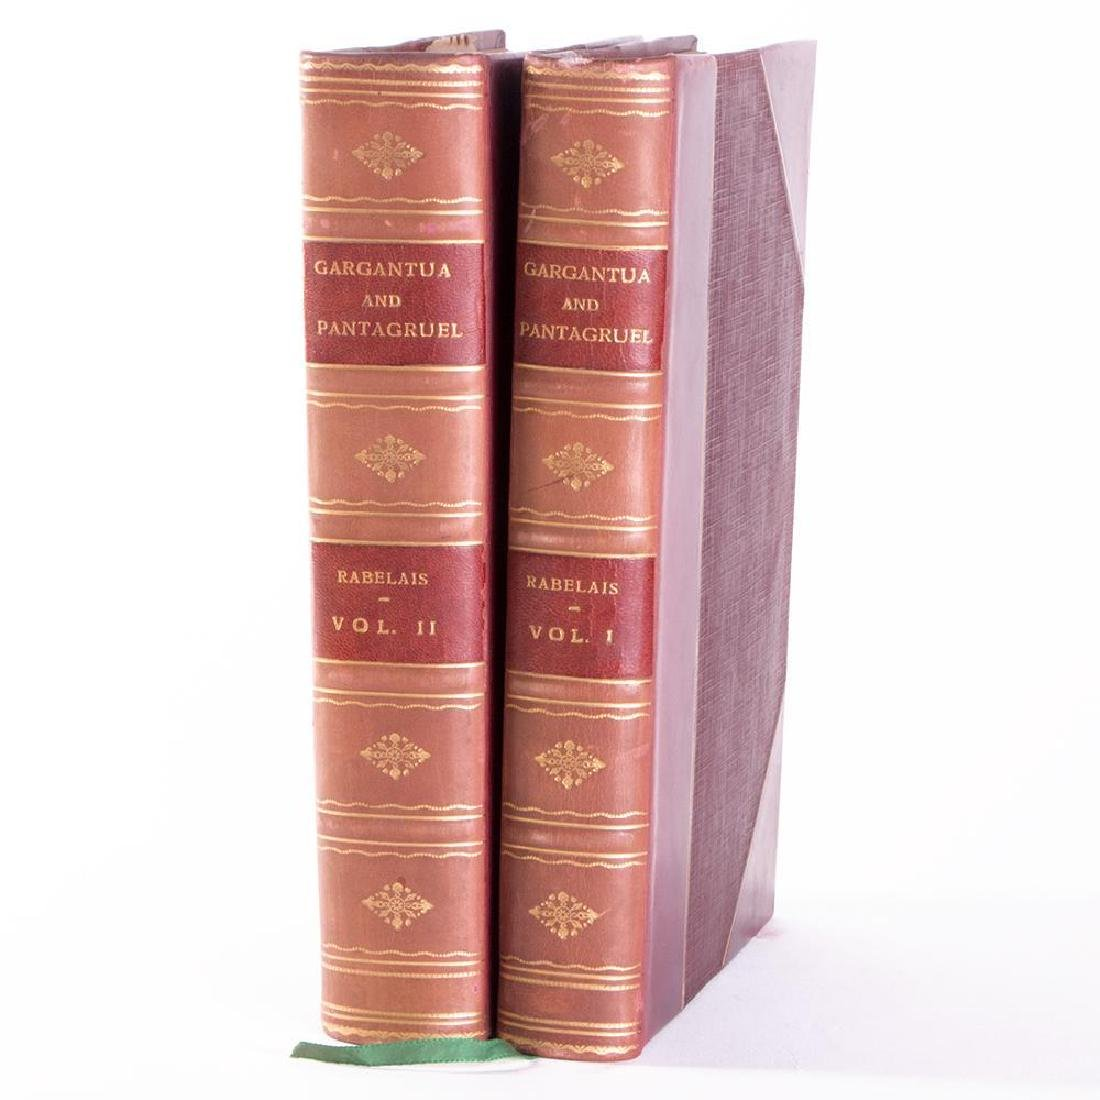 Two volumes by Francis Rabelais